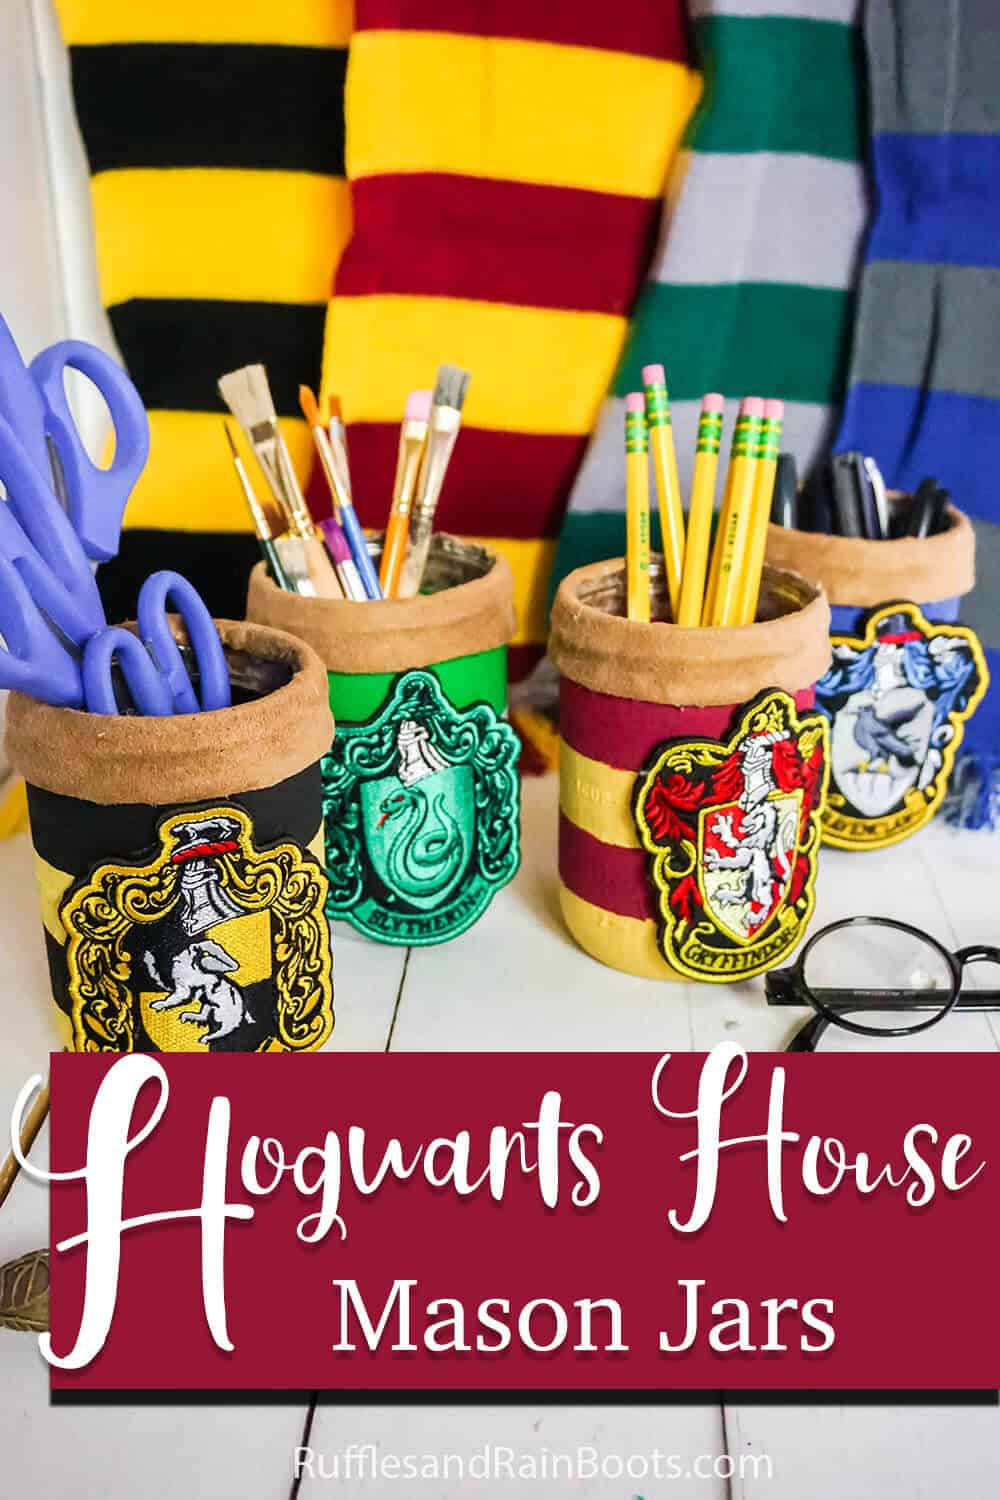 easy diy harry potter themed mason jar craft idea with text which reads hogwarts house mason jars